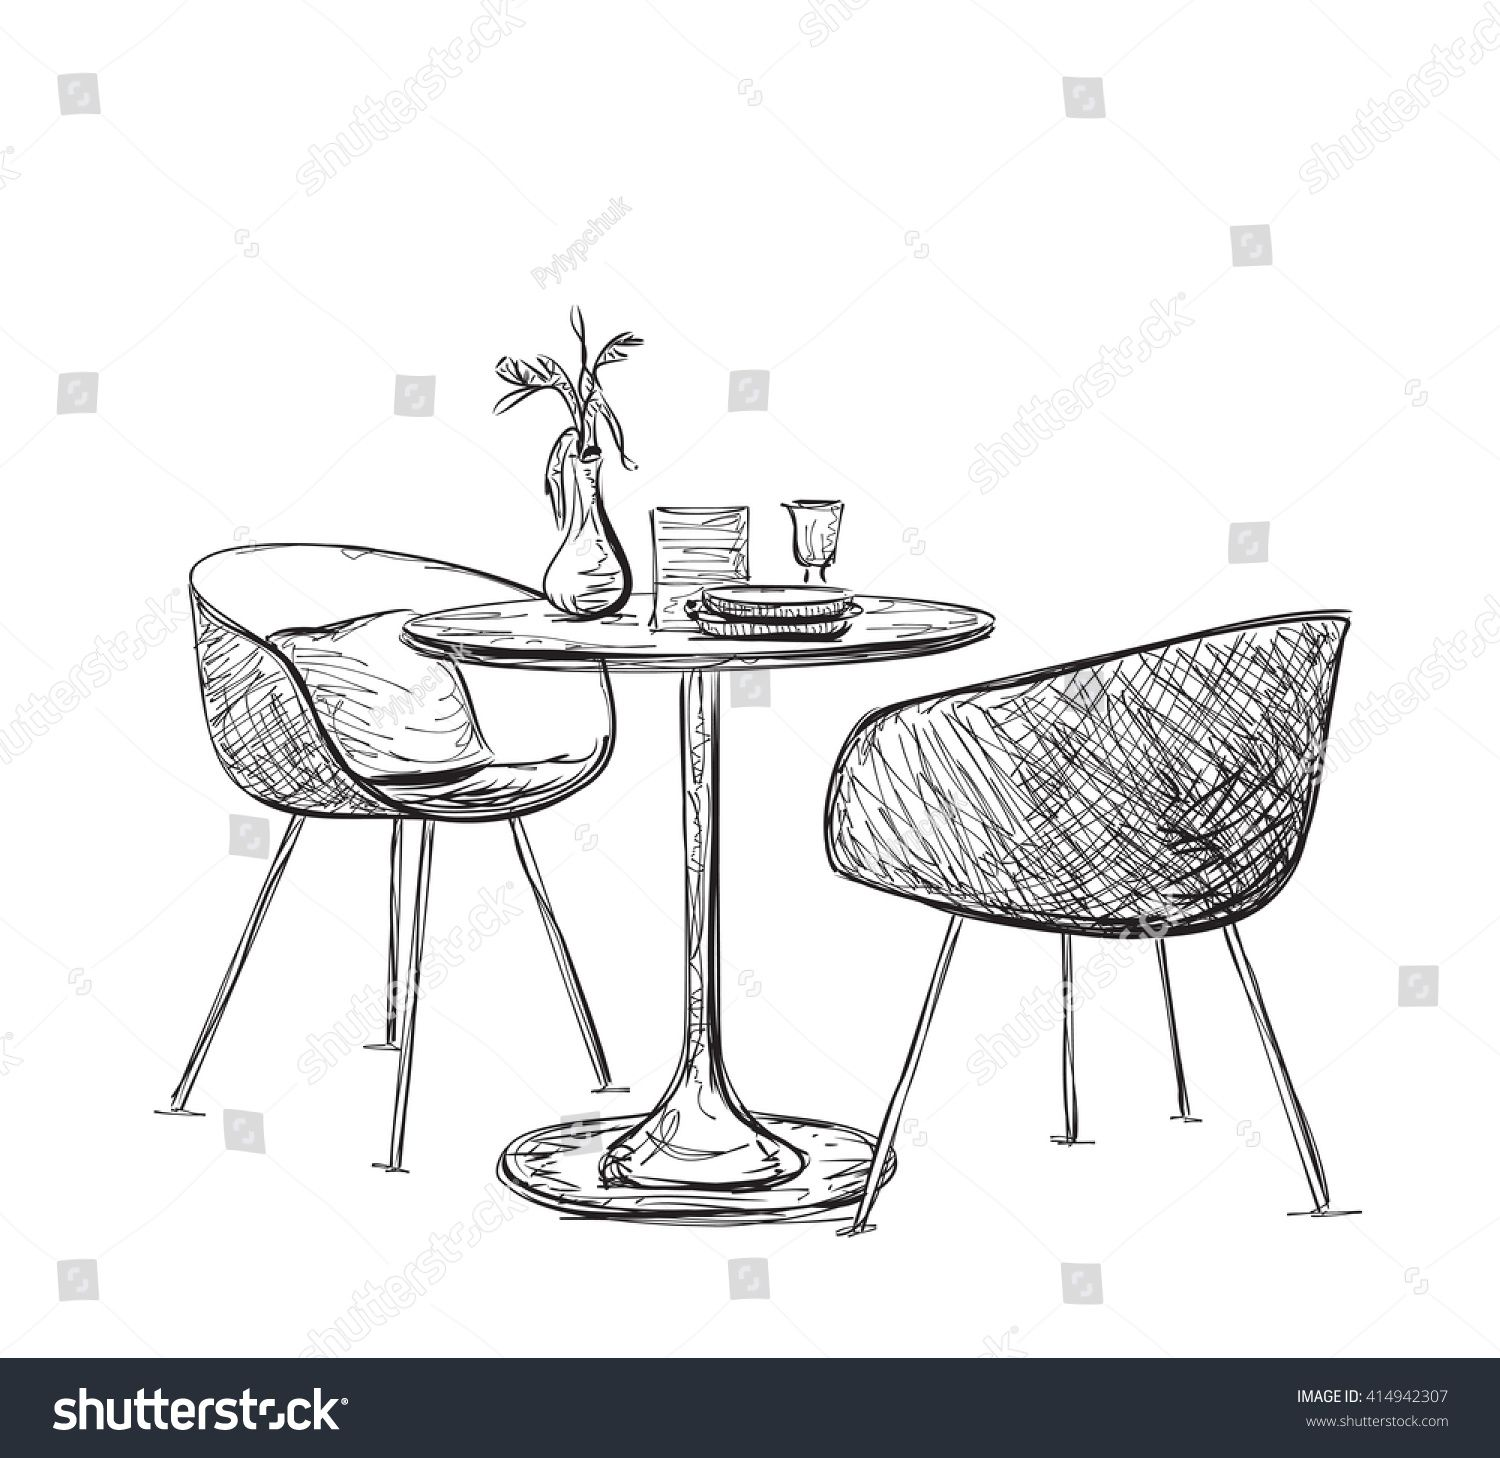 Sketch Of Modern Interior Table And Chairs Hand Drawn Furniture Interior Design Sketches Furniture Design Sketches How To Draw Hands